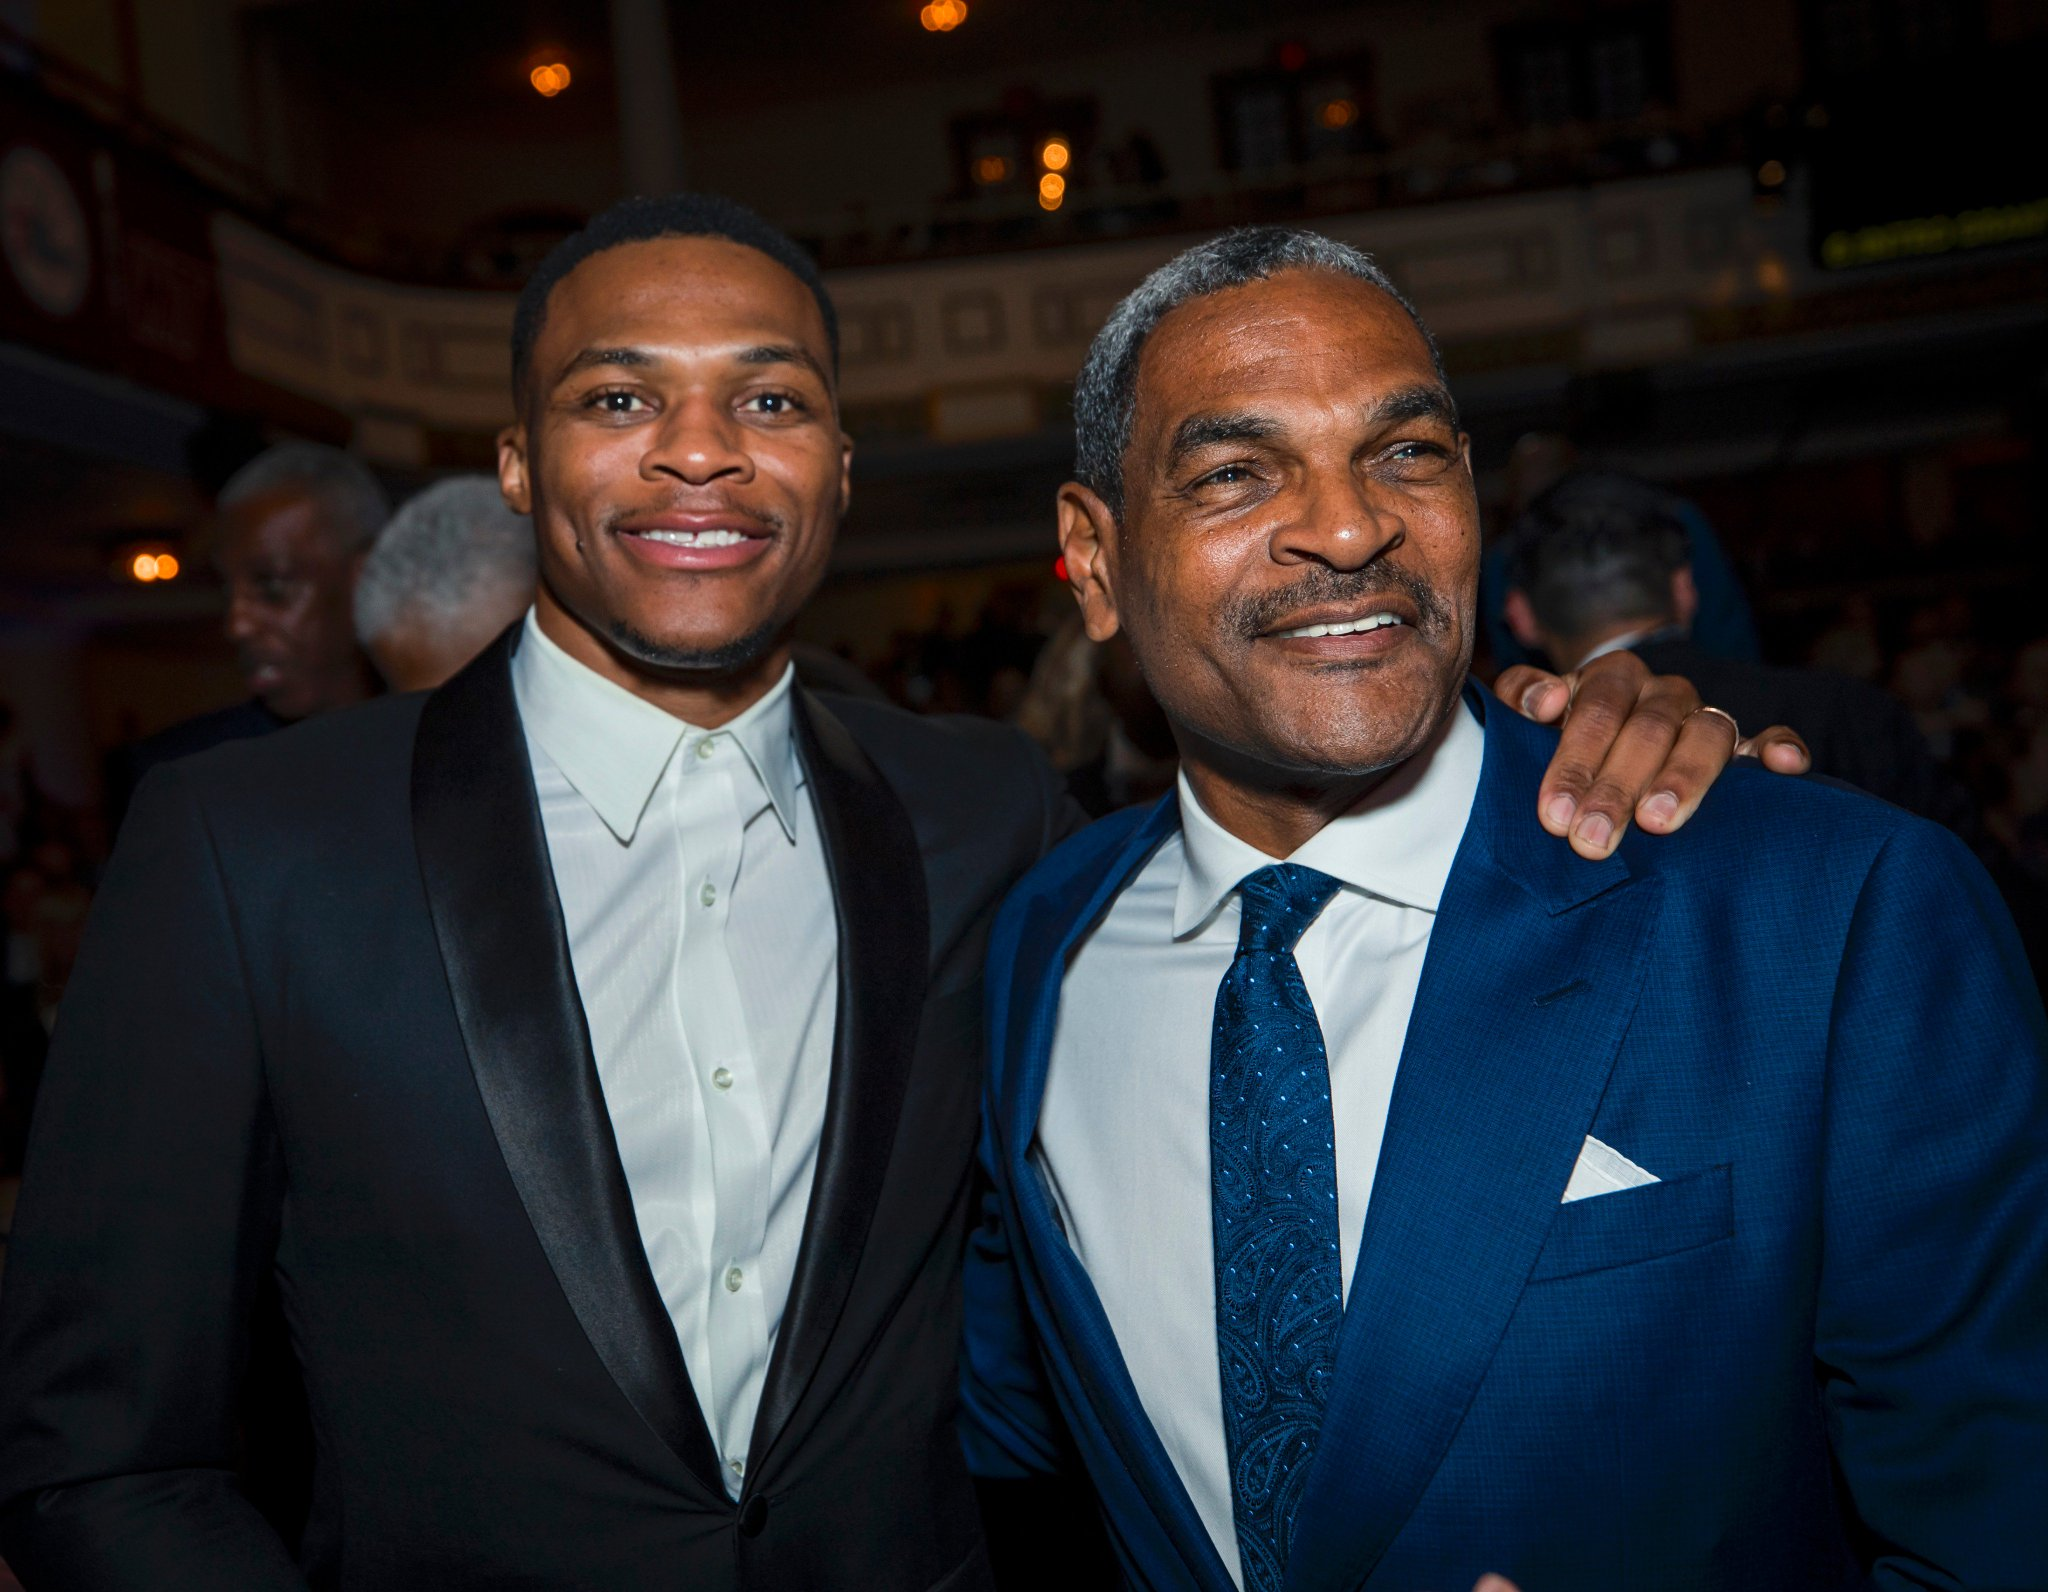 Together.  Supporting Coach Mo Cheeks @Hoophall #18HoopClass enshrinement ceremony. https://t.co/4Gebrmlfk9